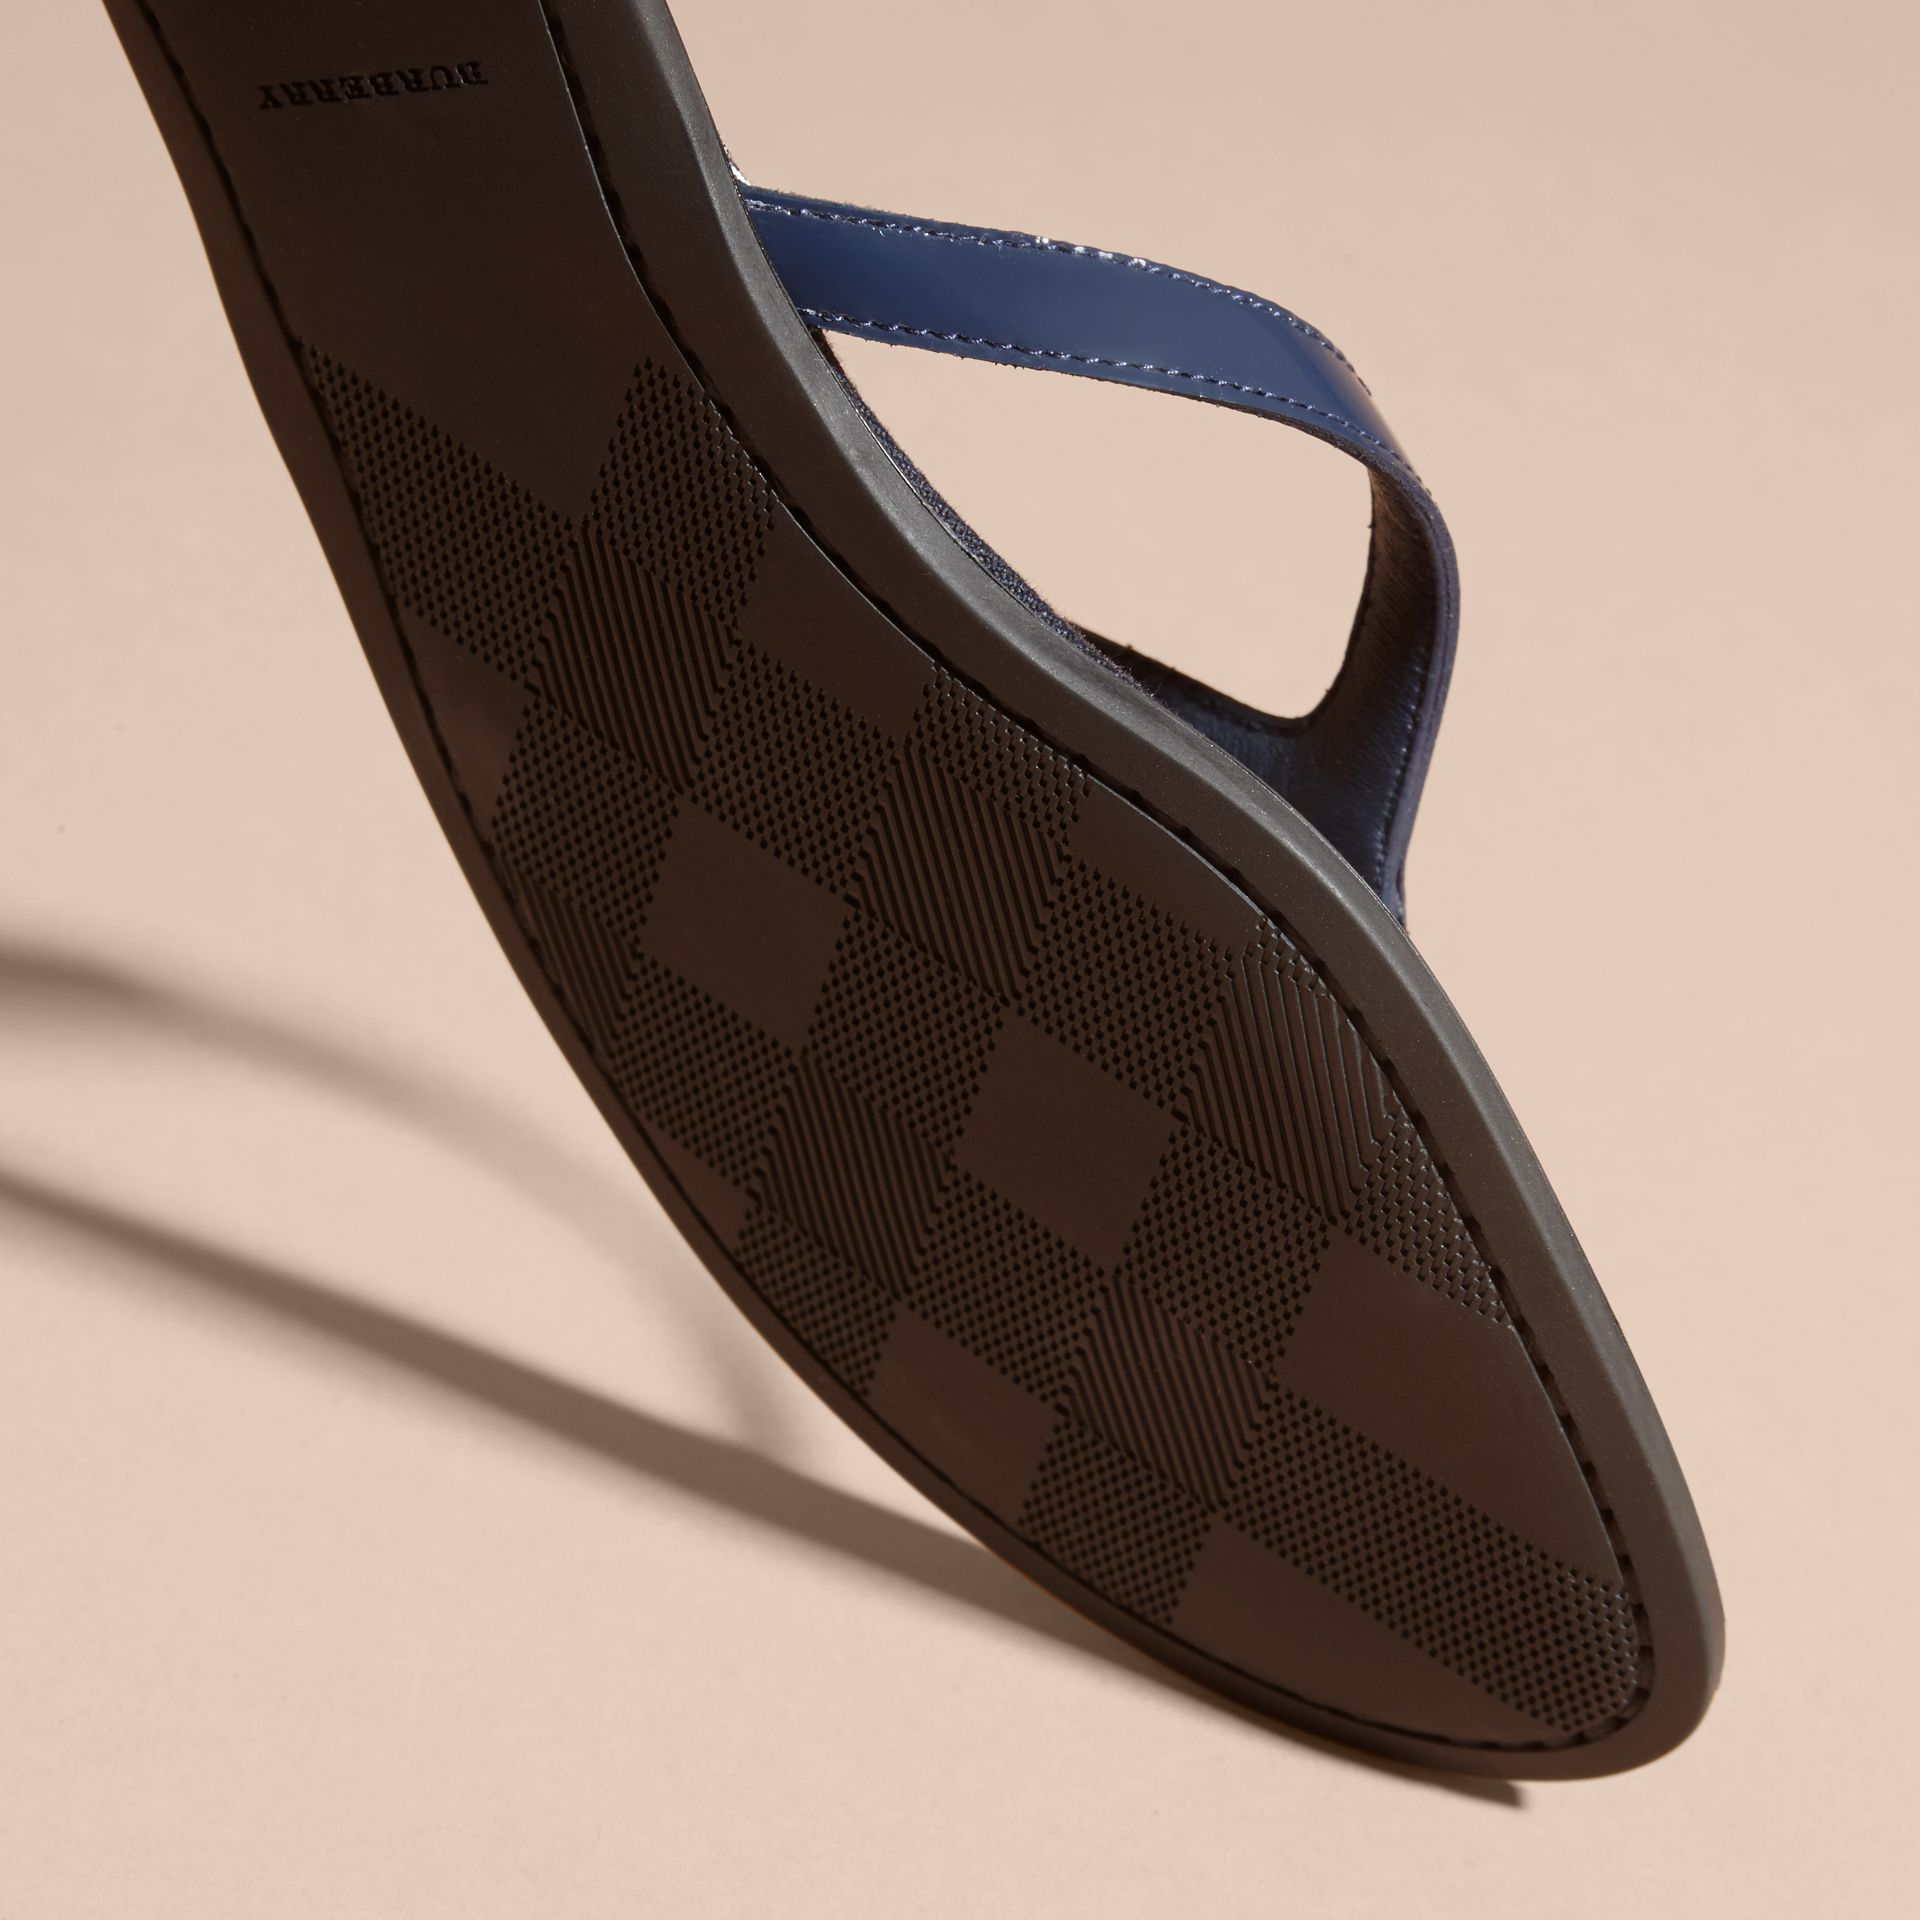 House Check and Patent Leather Sandals in Indigo Blue - Women | Burberry Australia - gallery image 5